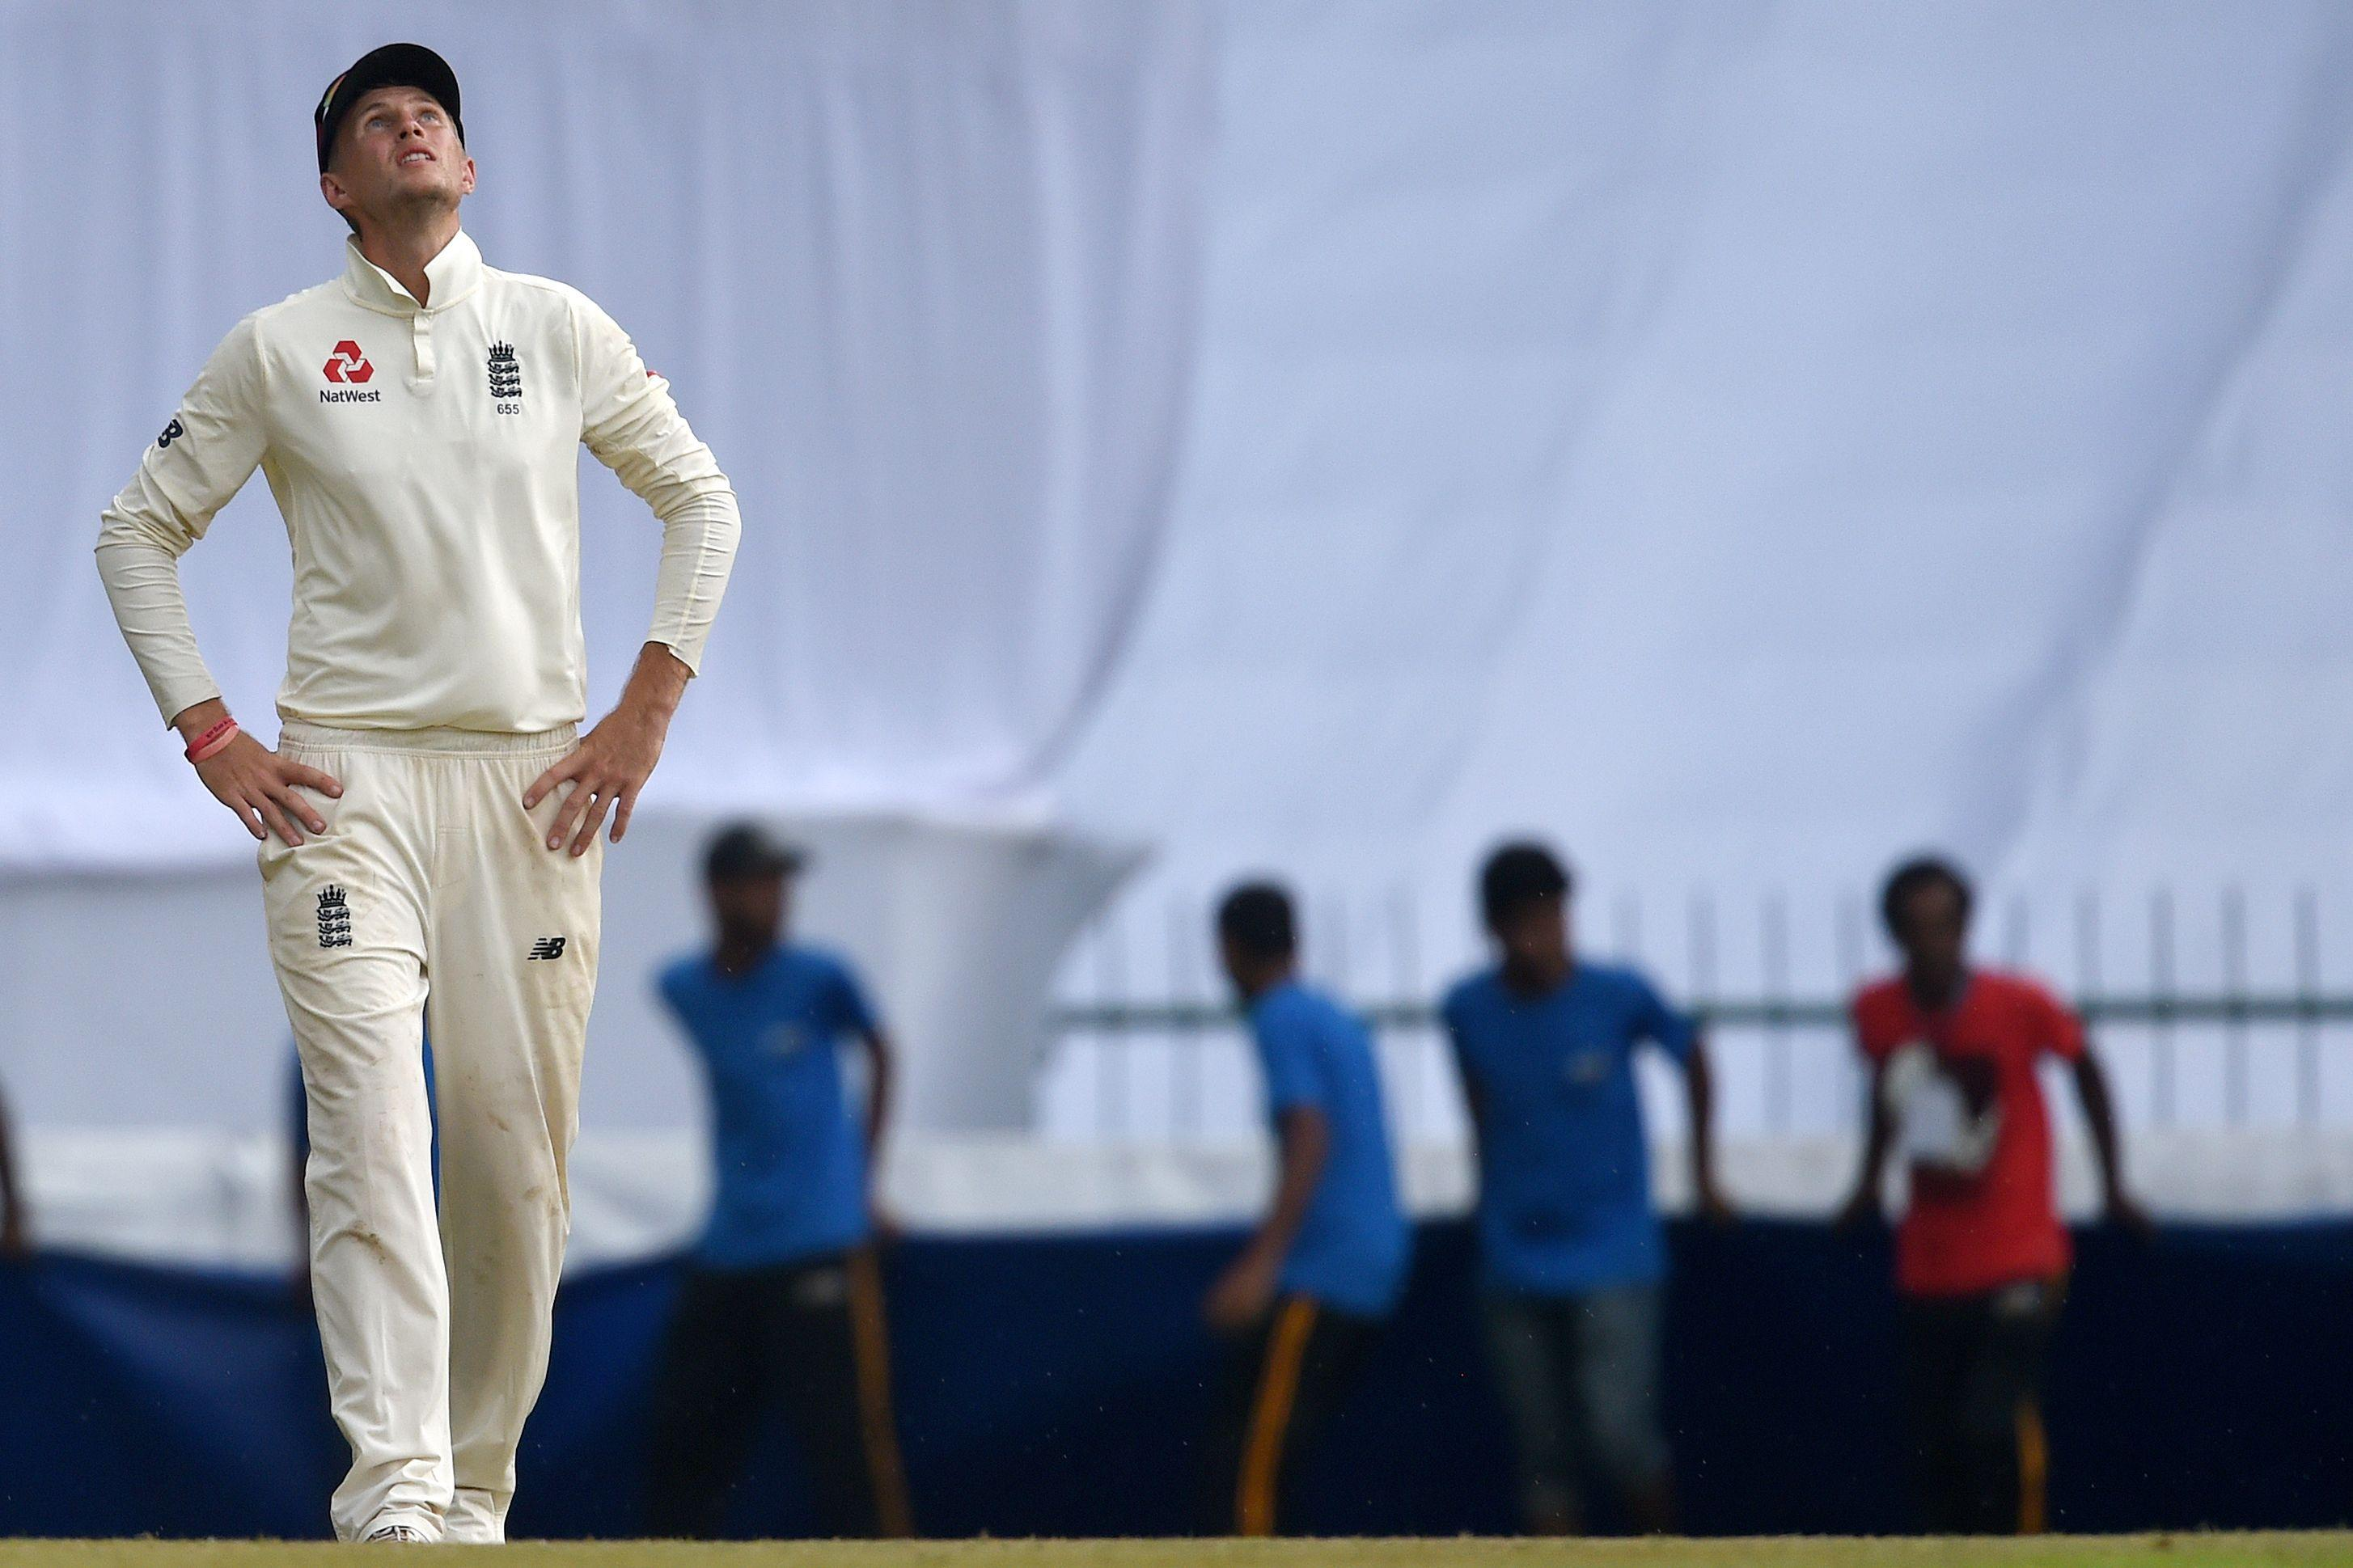 Under Joe Root, English cricket has been assertive with stroke-filled batting